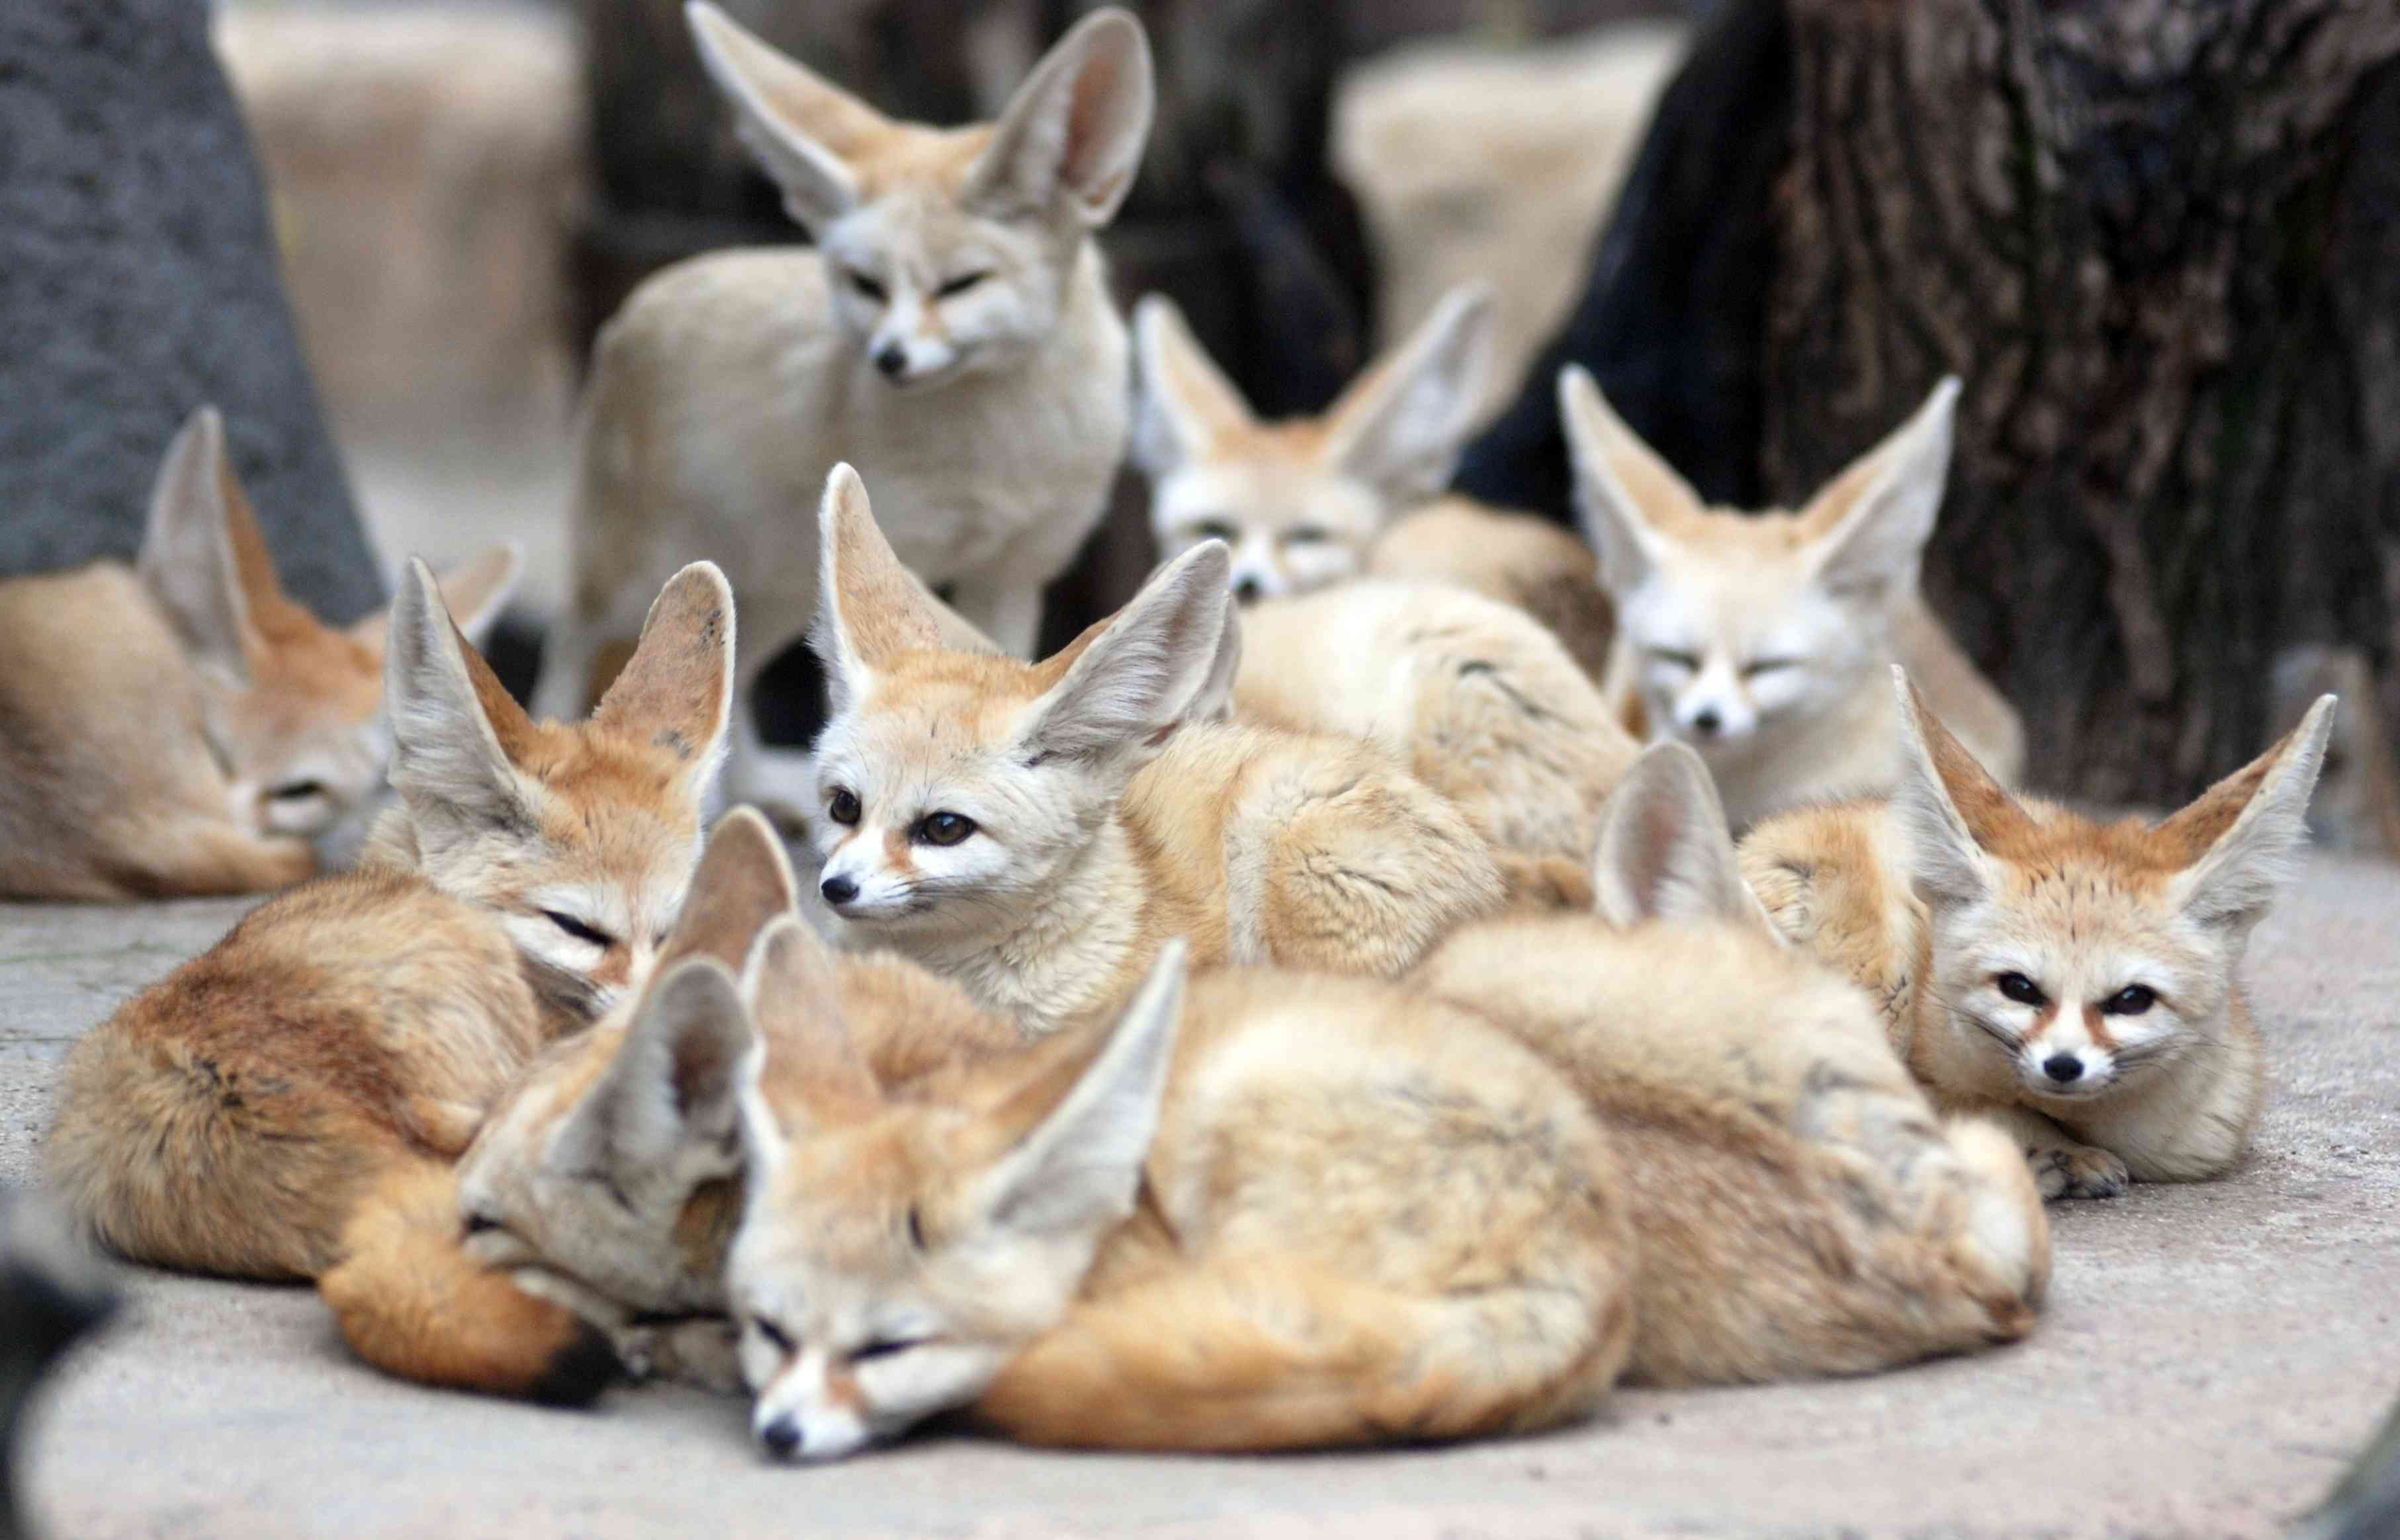 A group of fennec foxes huddled together